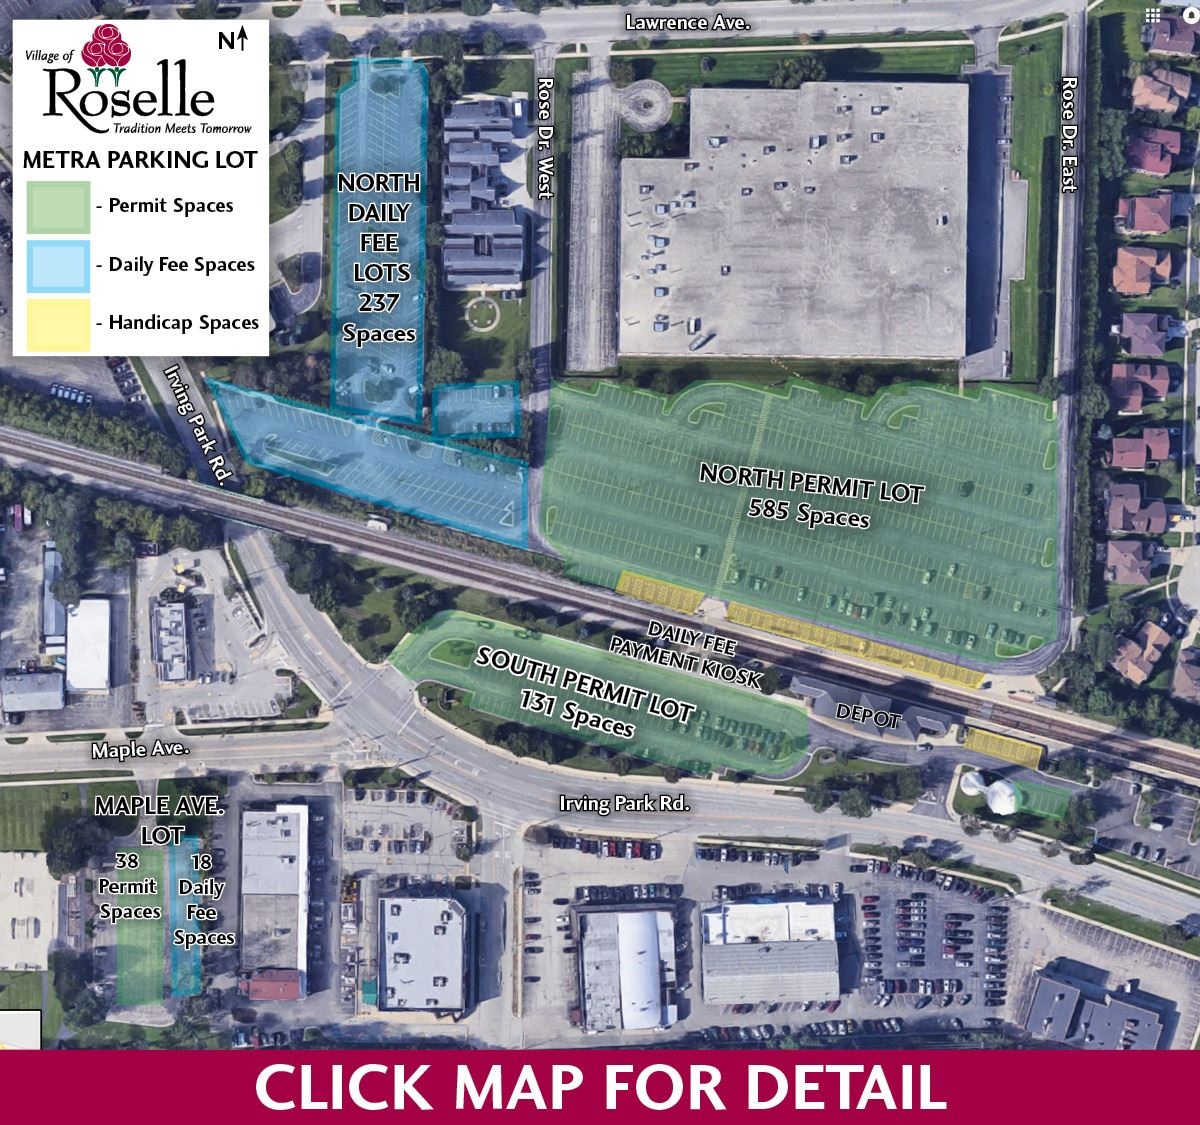 Roselle Metra Parking Map Opens in new window